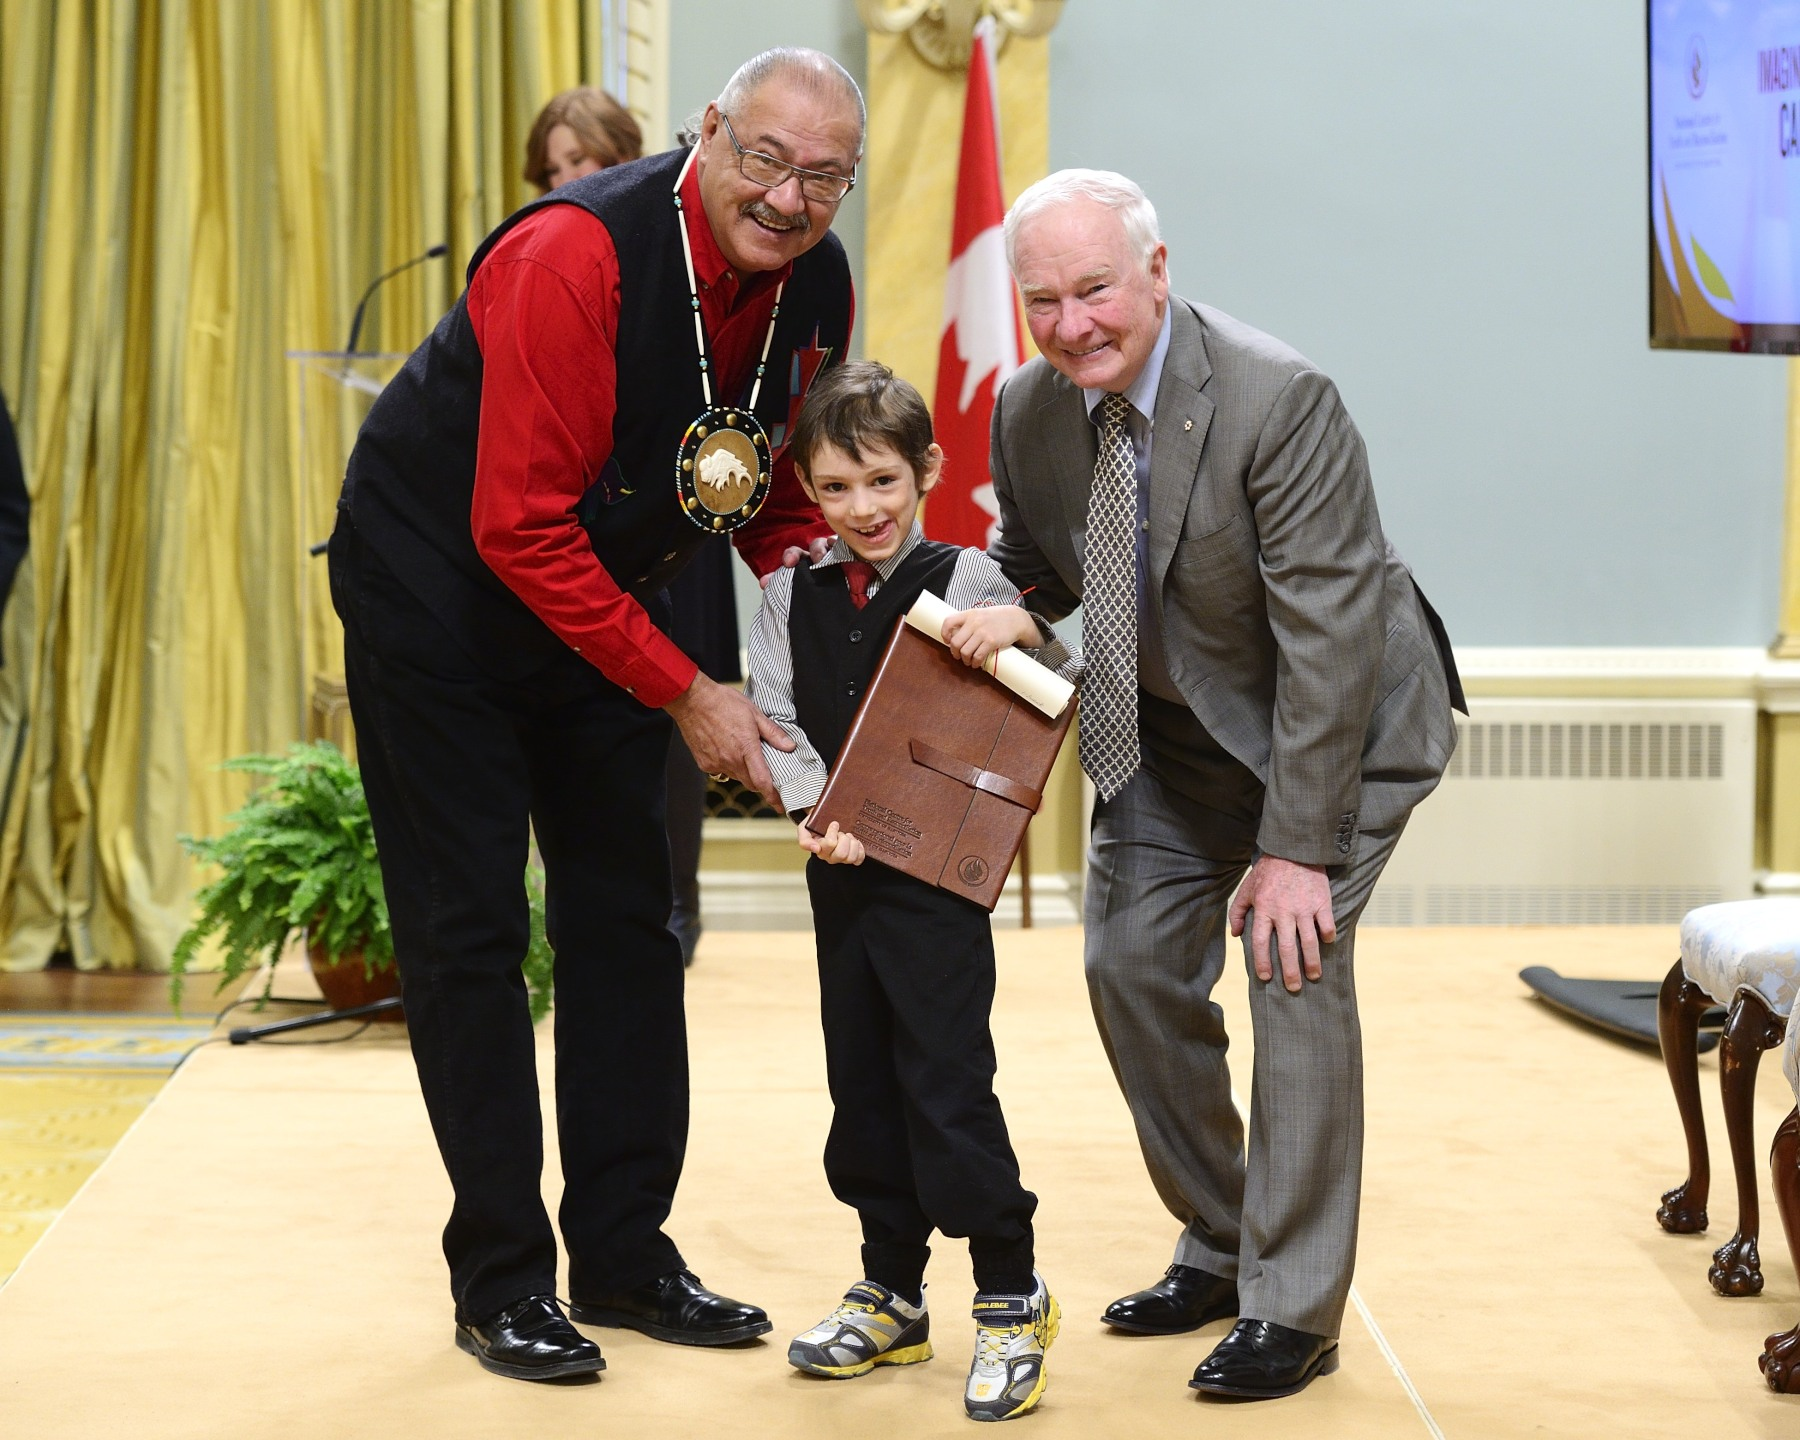 Laurick Corriveau, a grade 2 student, traveled from Carcross, Yukon, to attend the ceremony. He received a certificate from the Governor General and a gift from Mr. Arcand.